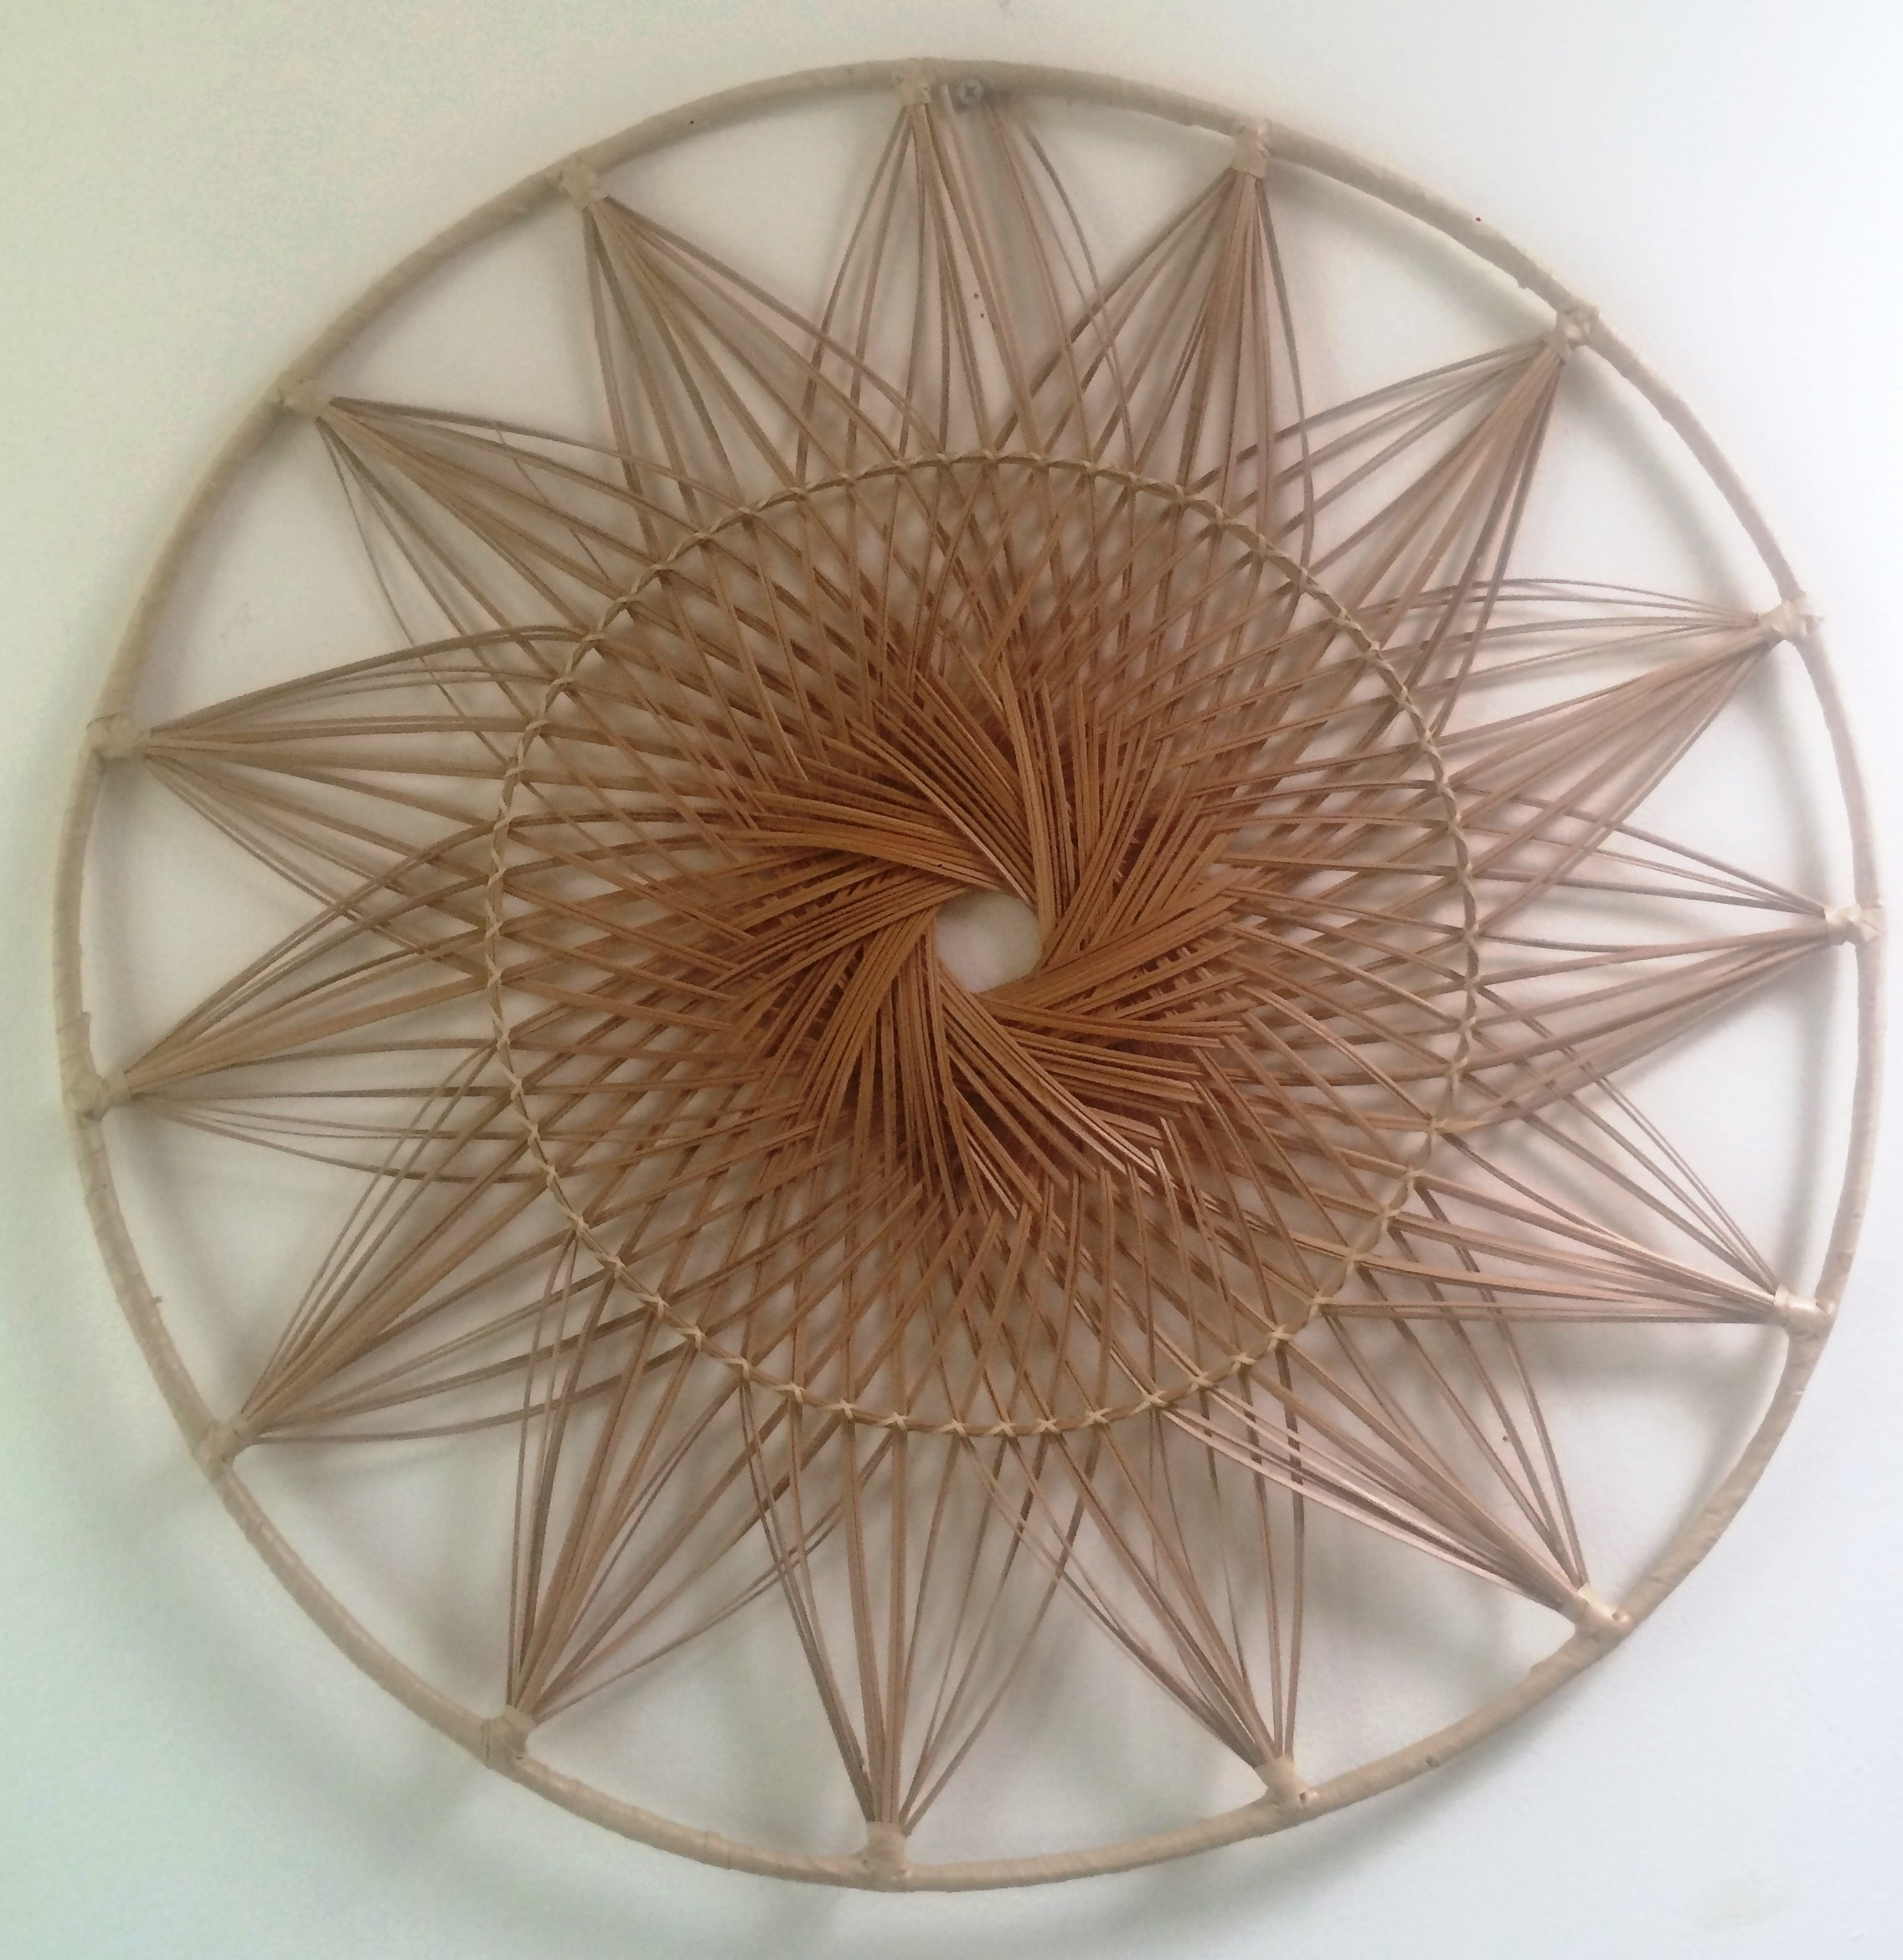 Newest Ingenious Design Ideas Woven Basket Wall Art Vintage Hanging Large Pertaining To Woven Basket Wall Art (View 3 of 15)